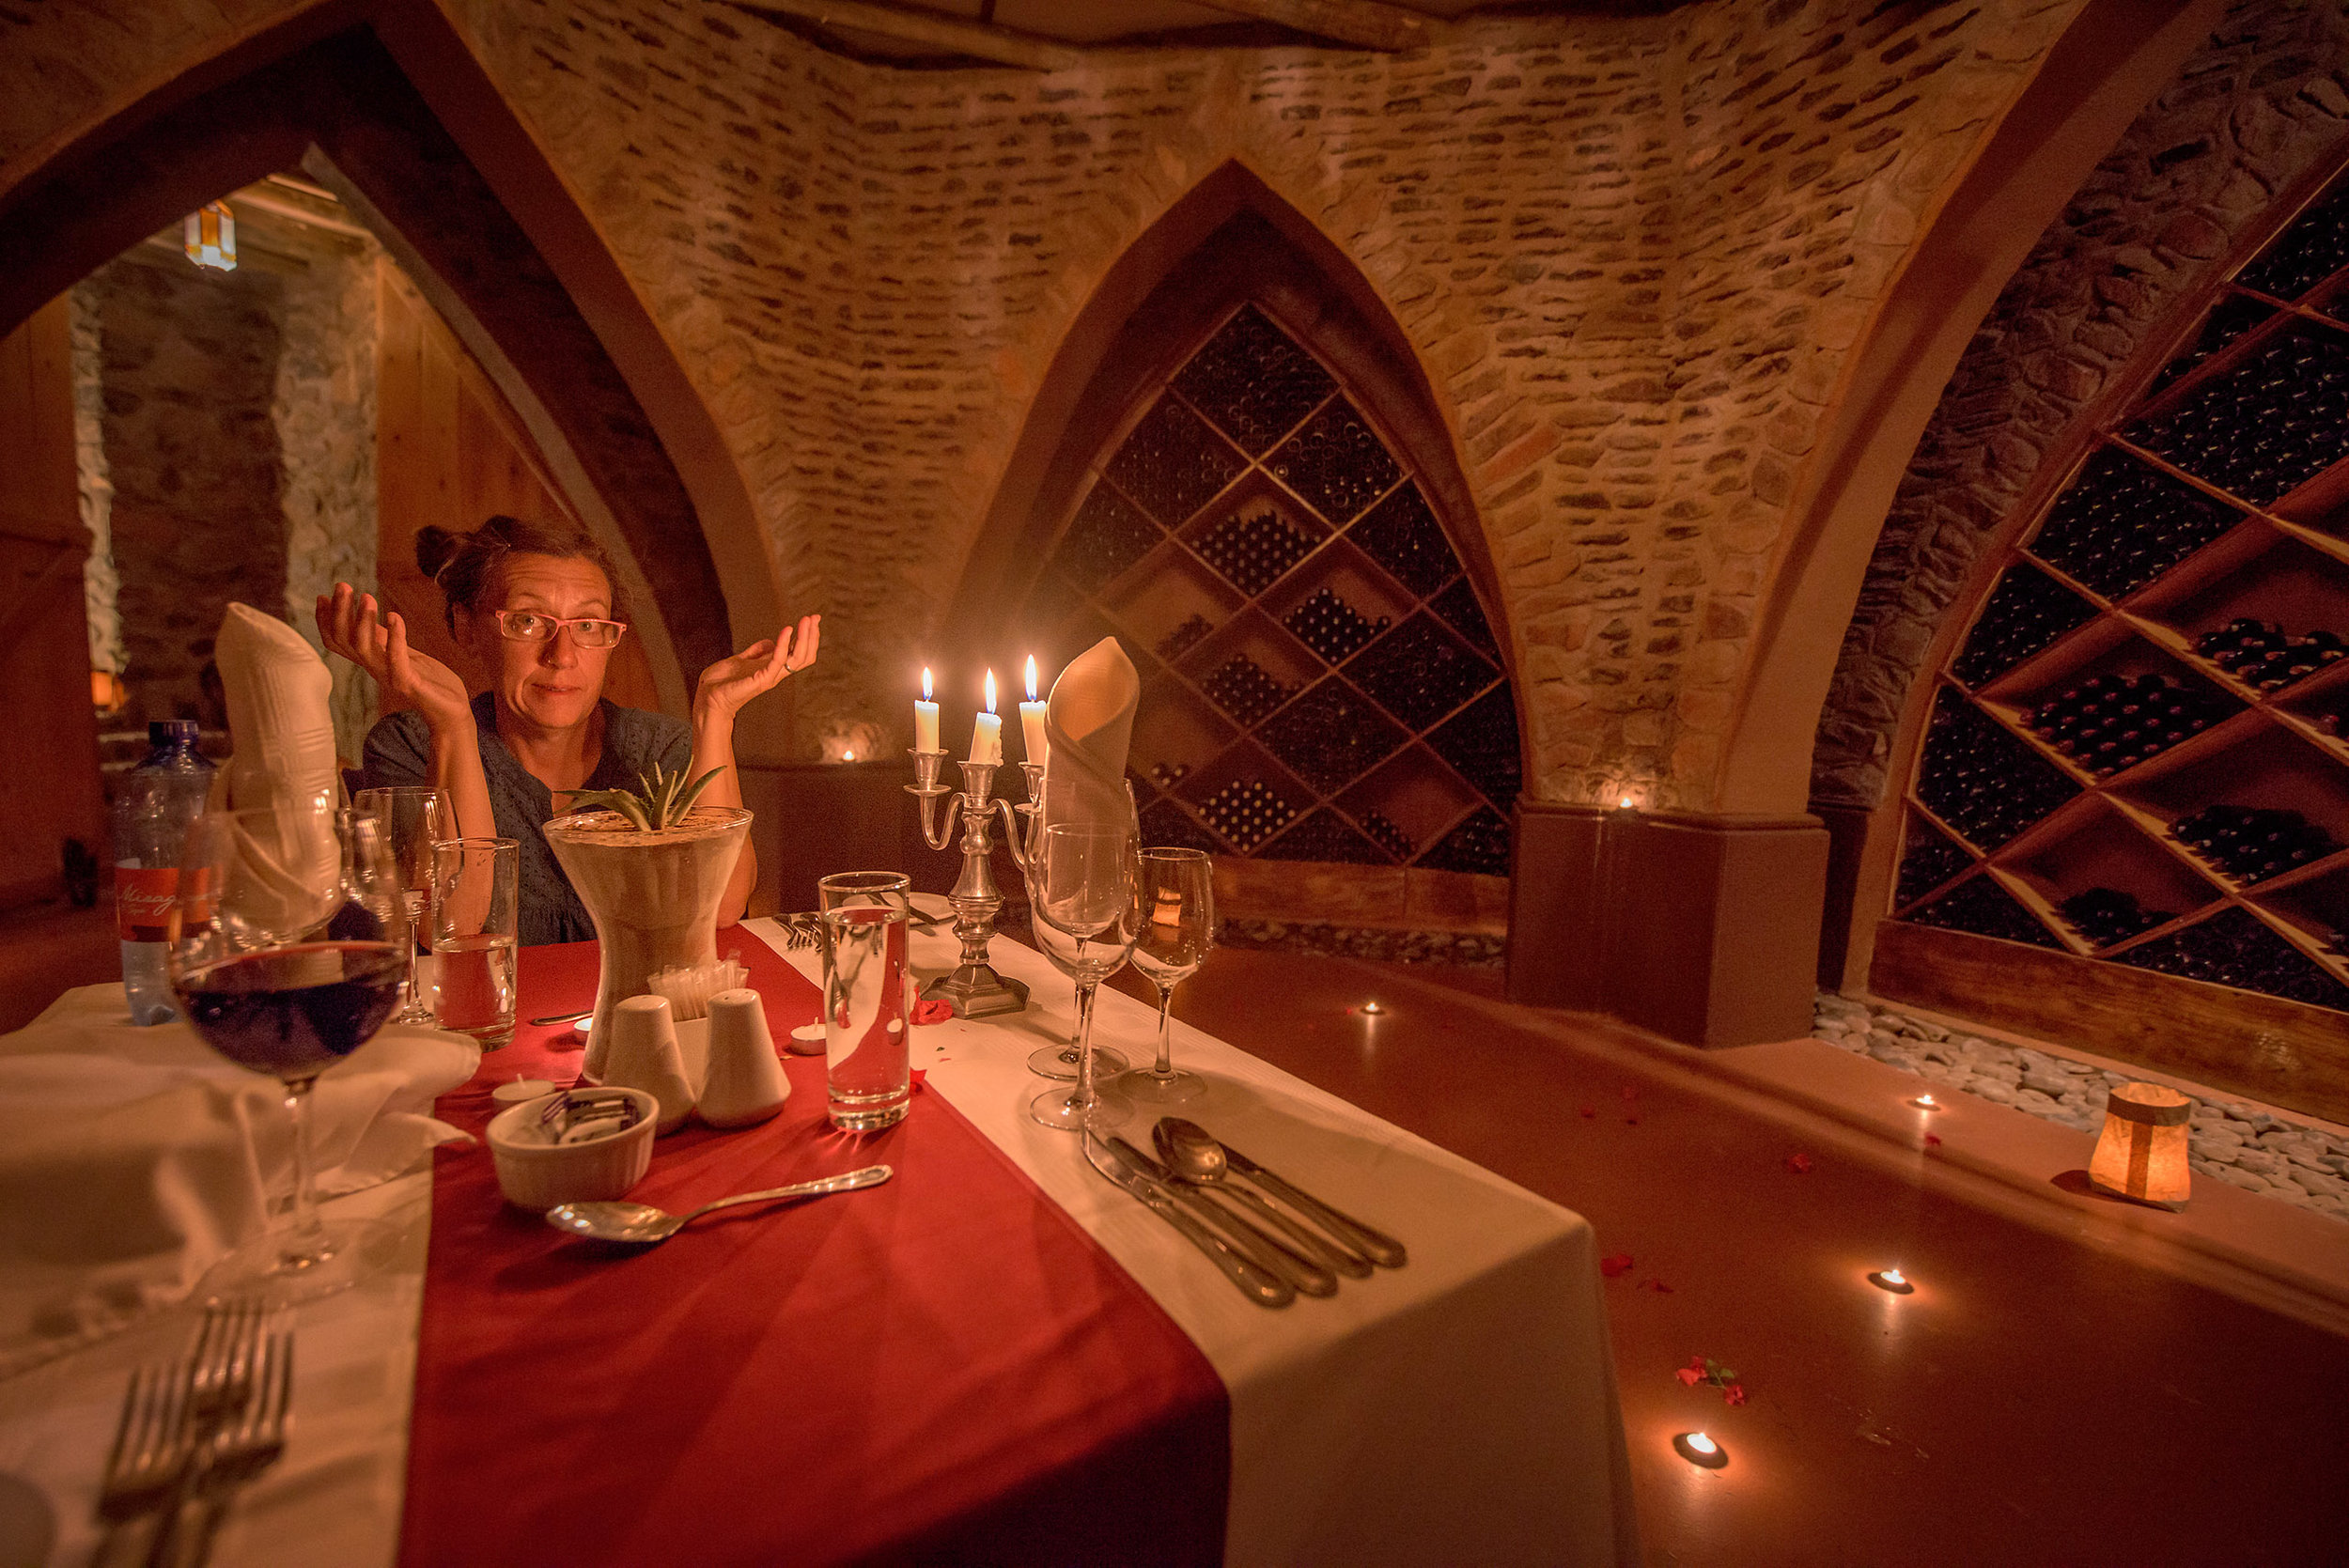 A romantic dinner for two in the cellar. Could we, uh, ... just borrow a corkscrew?